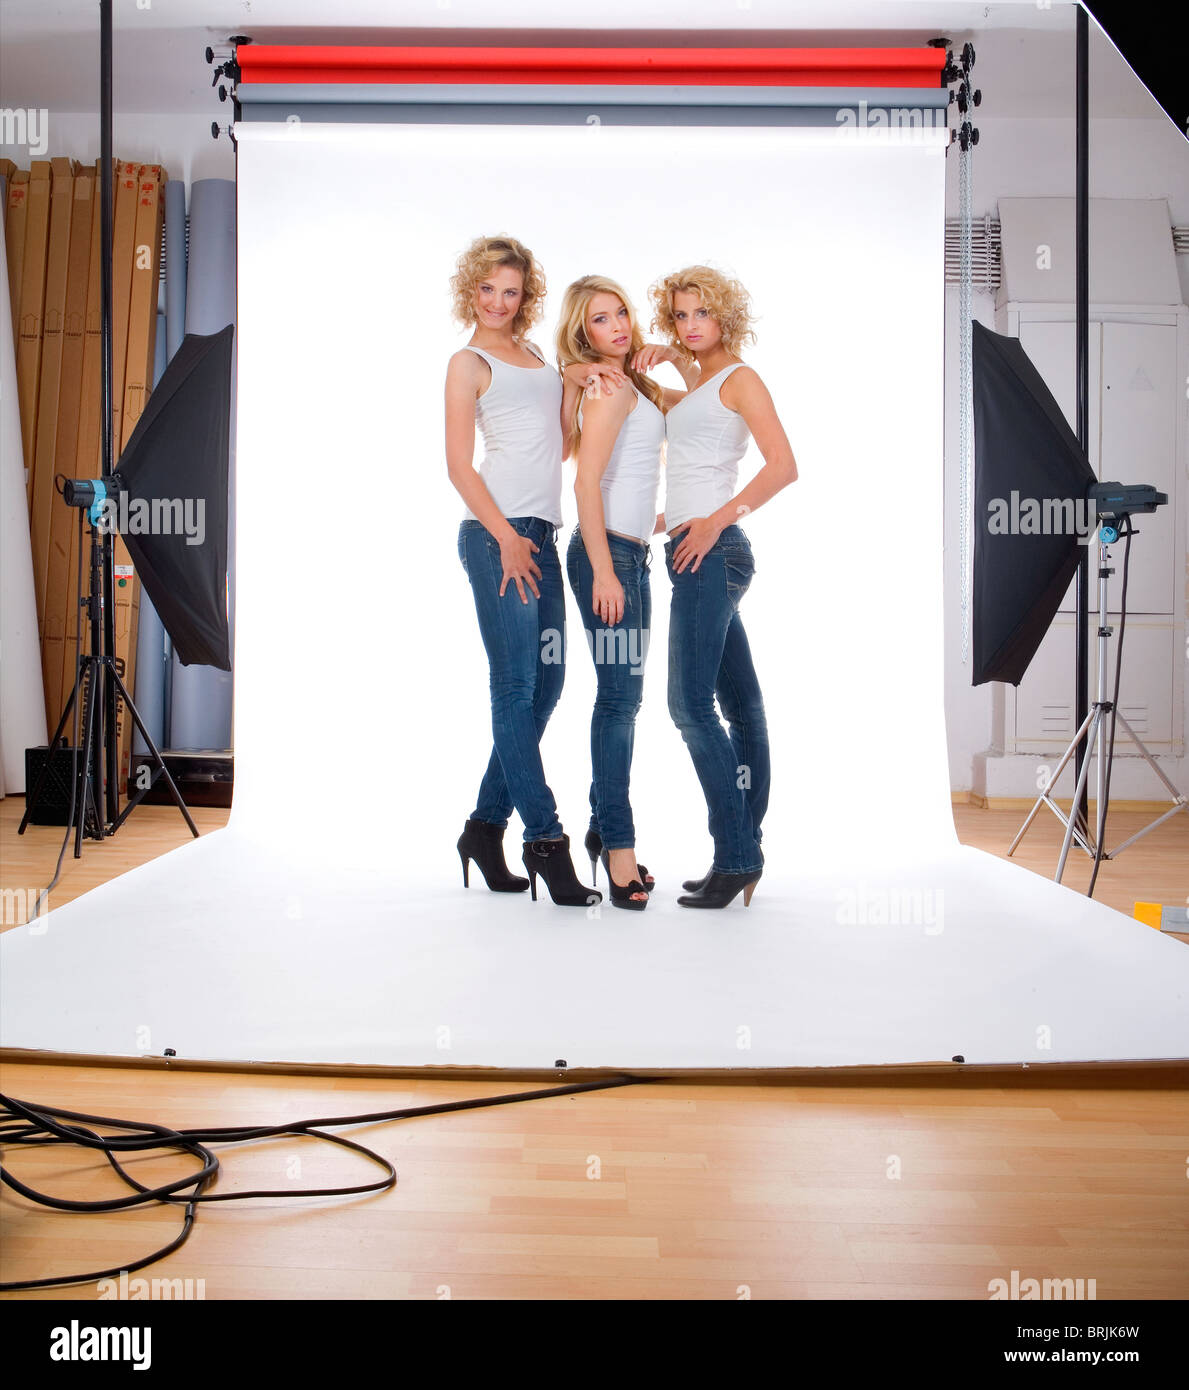 three young female models in casual clothing standing in photographer studio - Stock Image